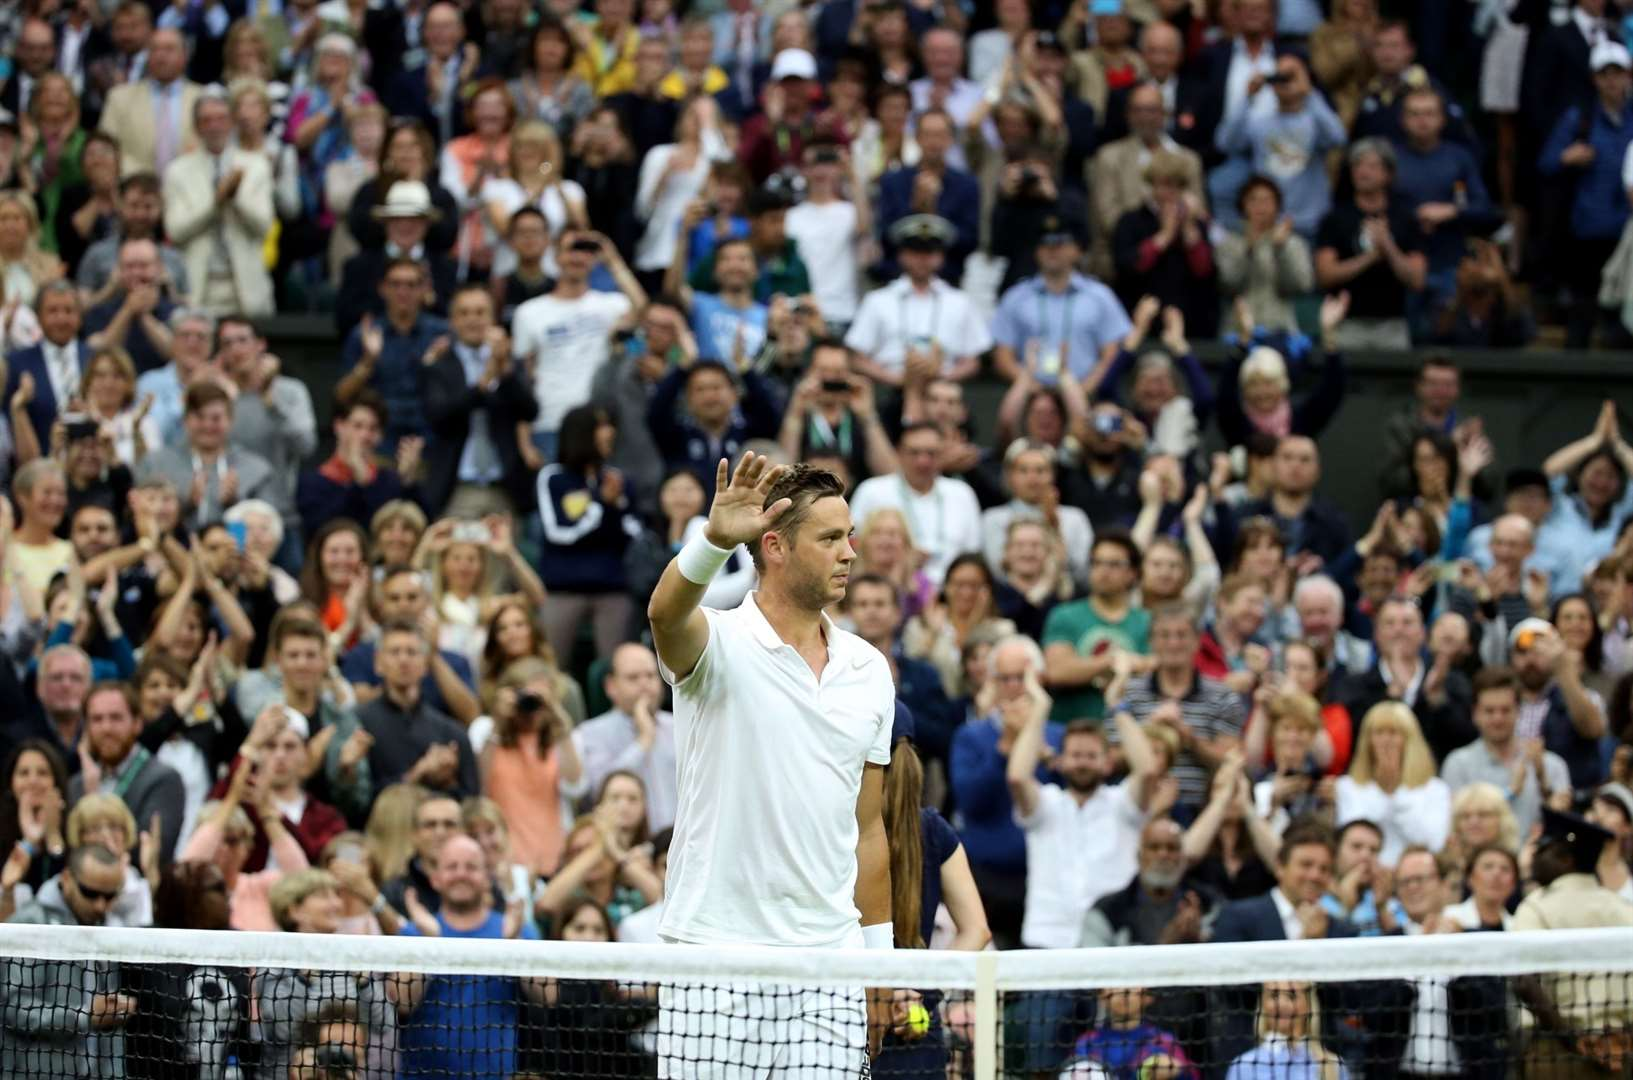 Marcus Willis acknowledges the crowd following his defeat to Roger Federer.